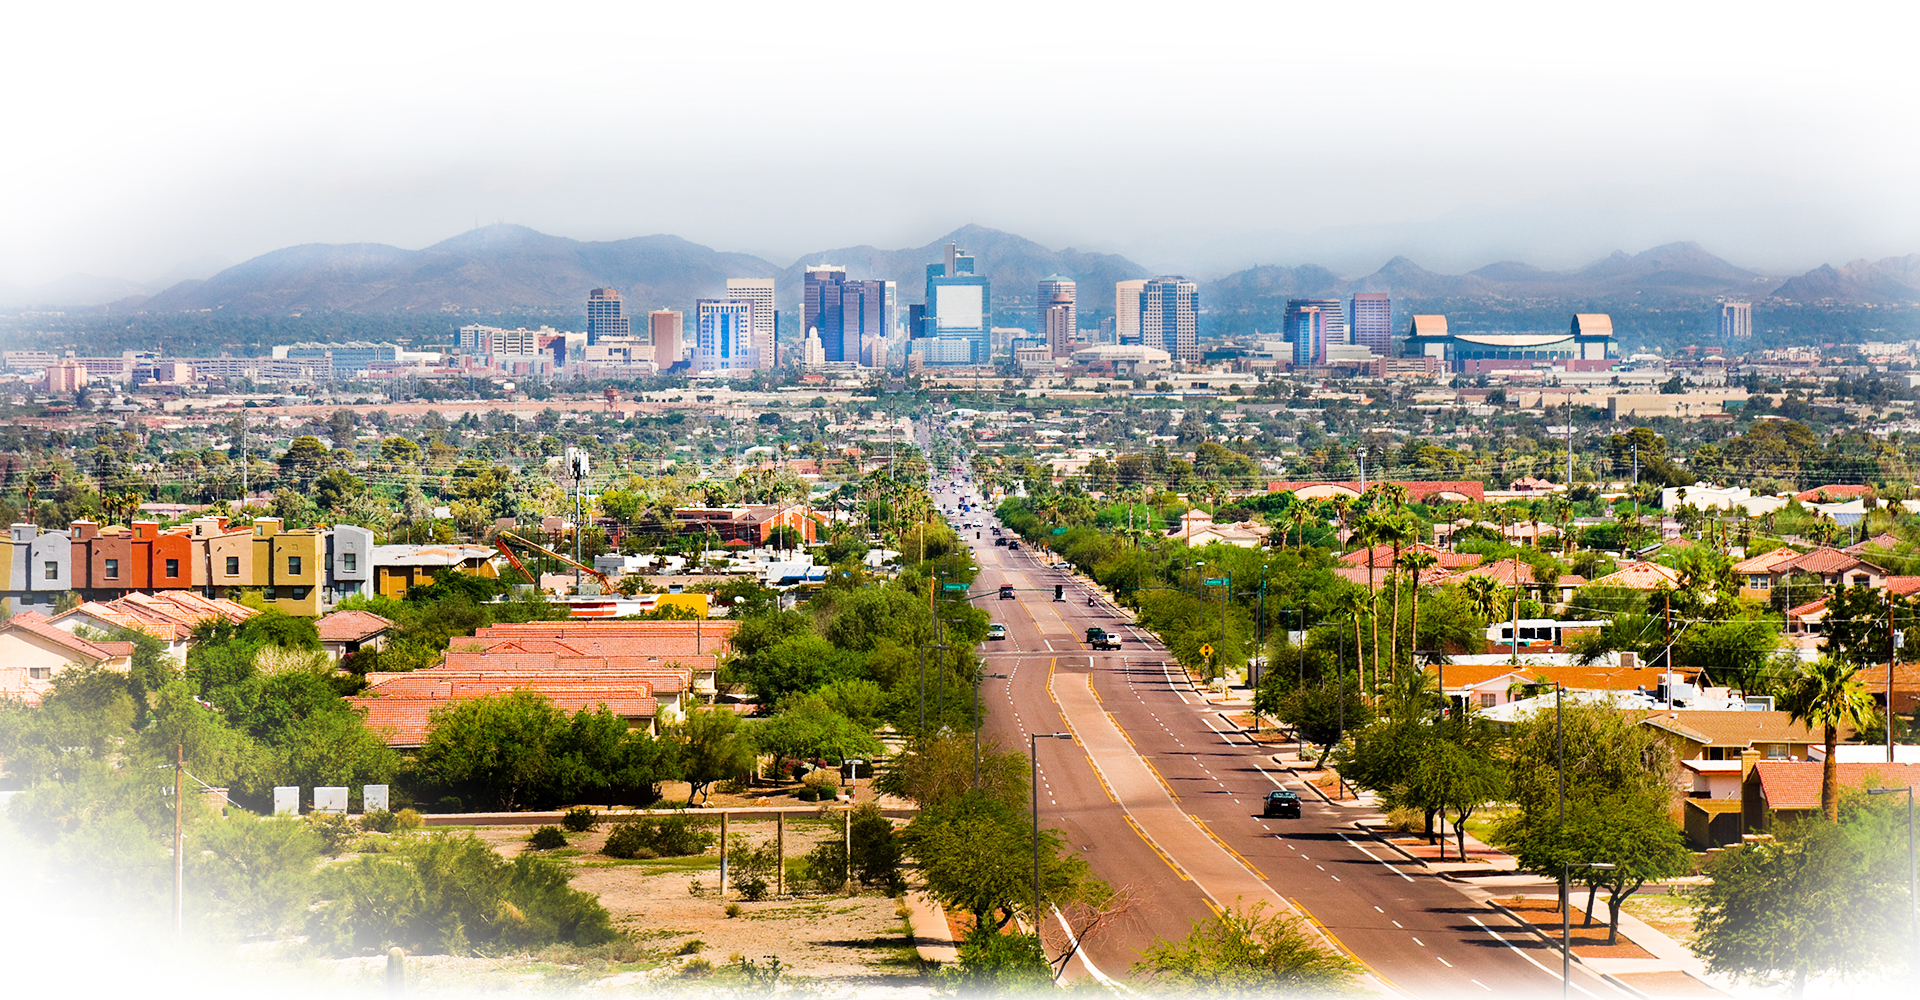 Find Best Resumes in Phoenix In Our Database. Search for candidates resumes.